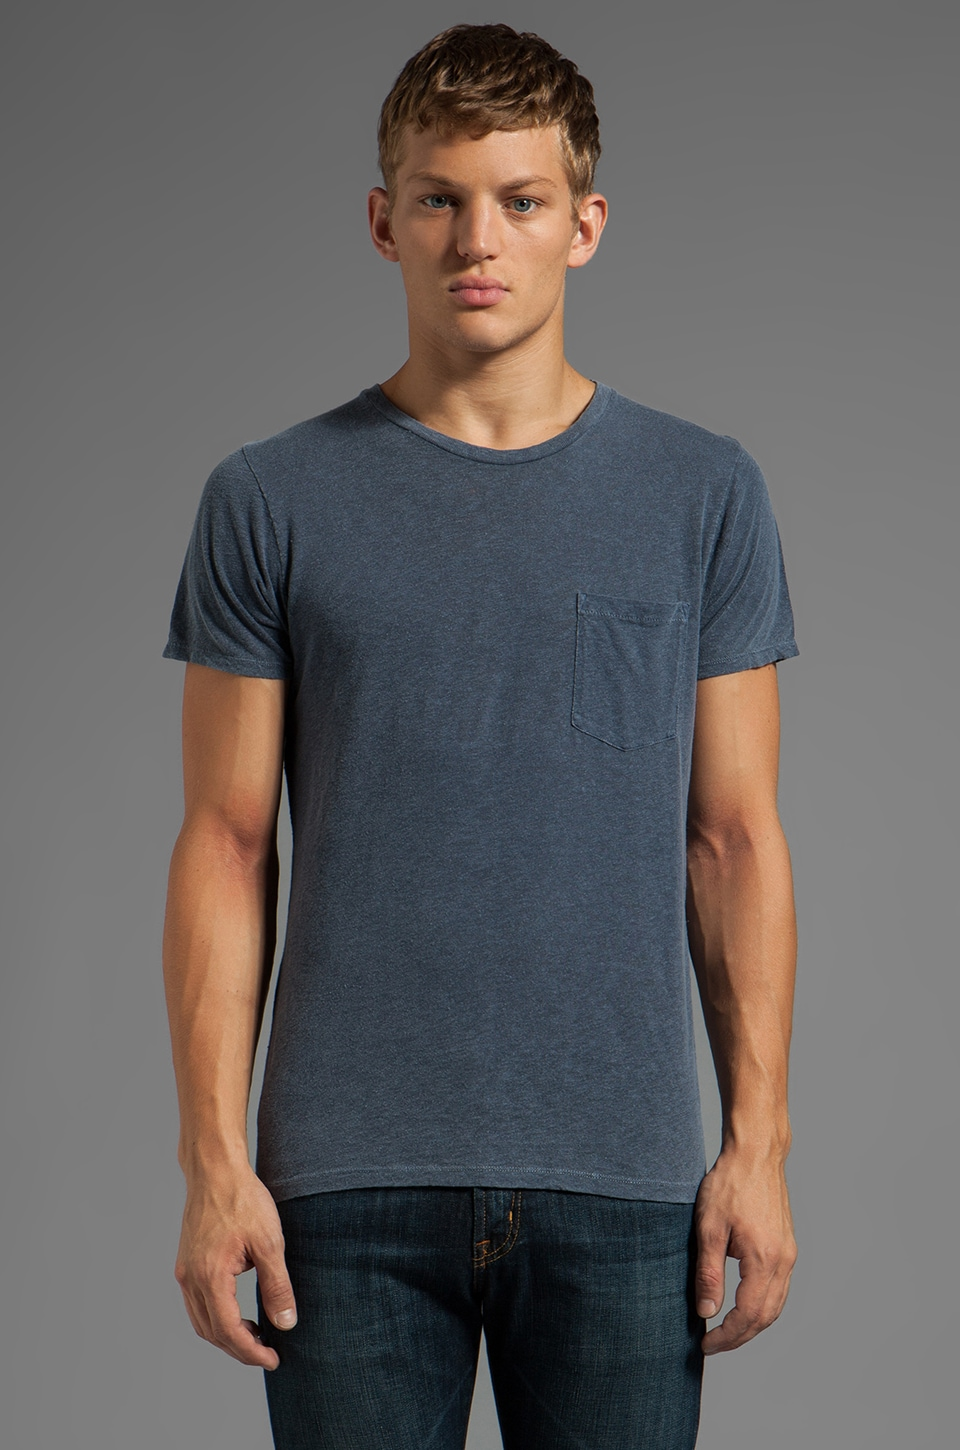 AG Adriano Goldschmied Back Seam Pocket Tee in Pigment Ink